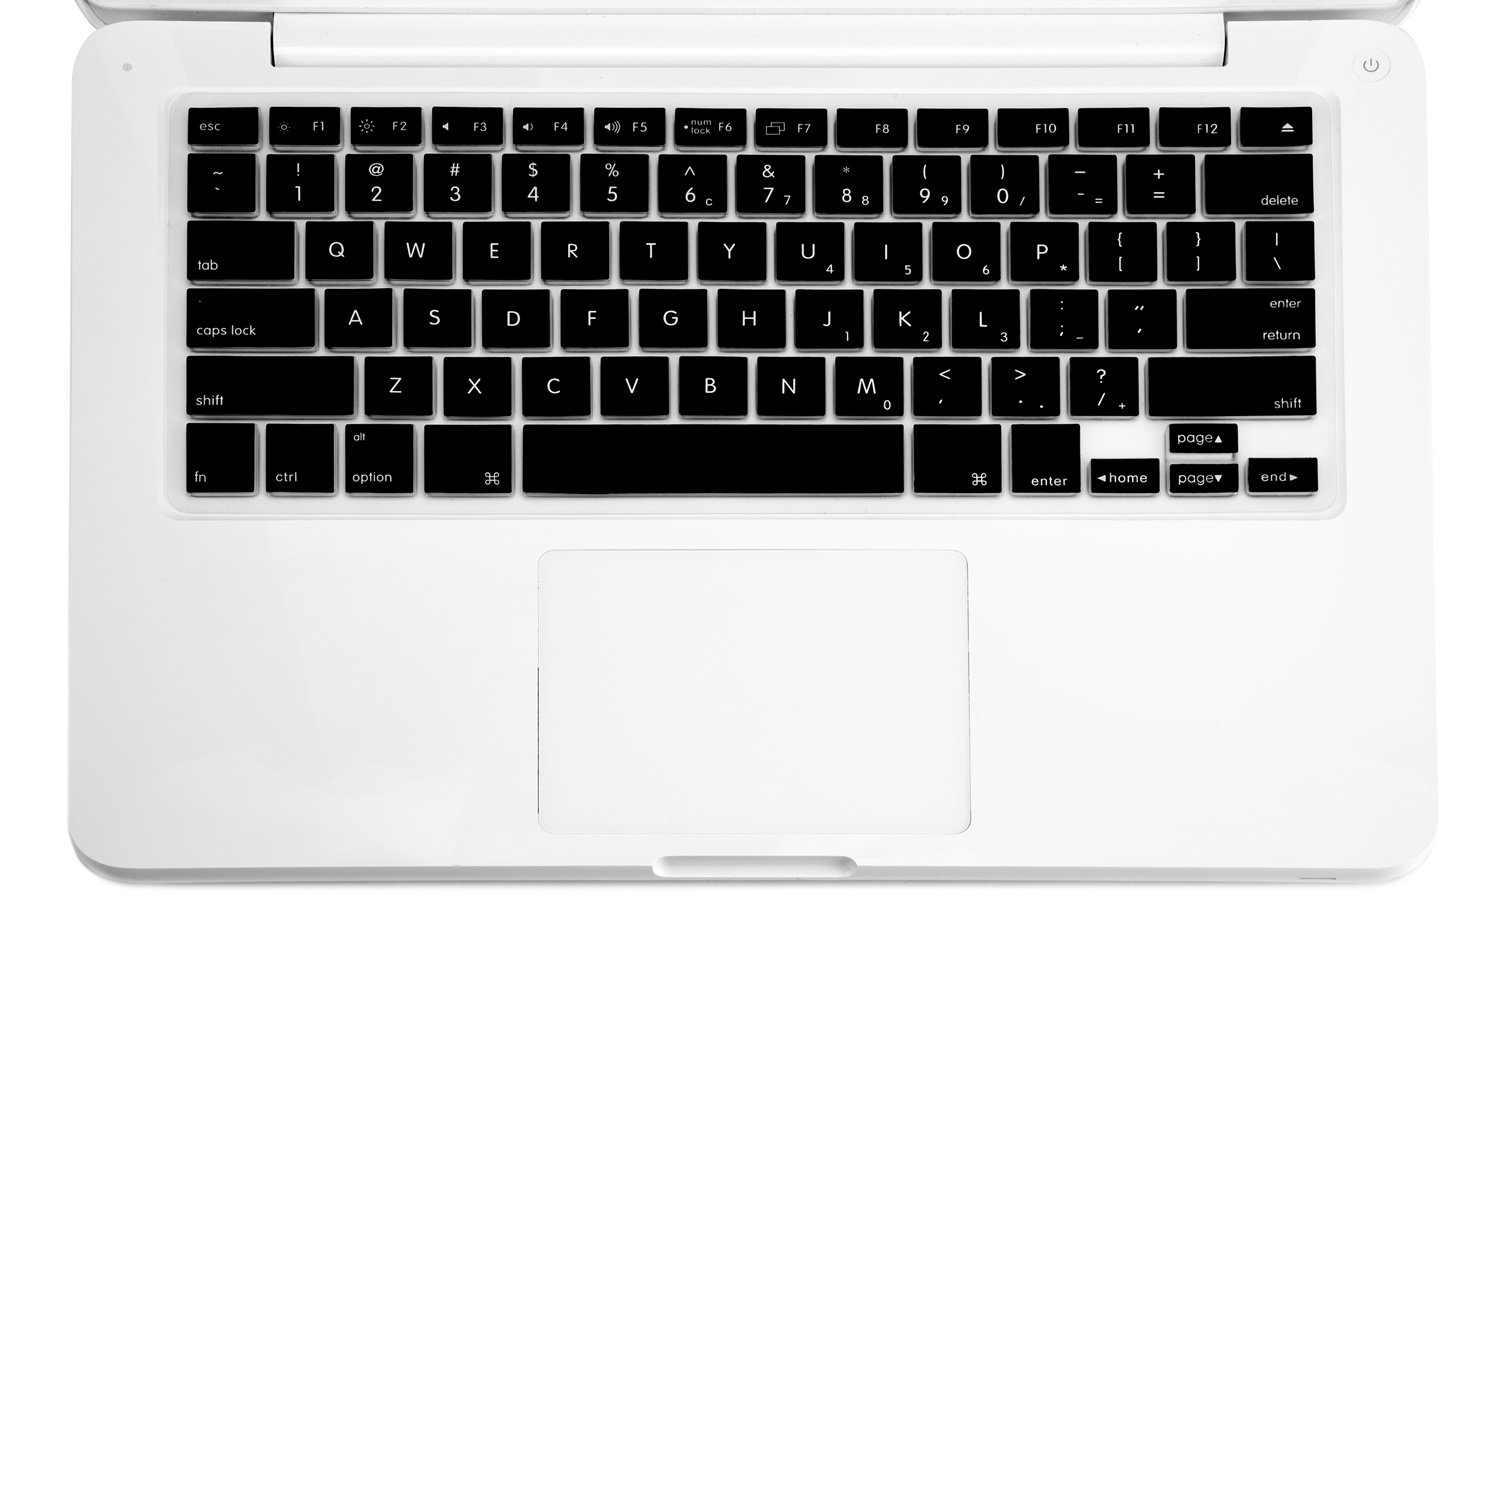 Amazon.com: TopCase BLACK Keyboard Silicone Skin Cover for Macbook 13 13.3 (1st Generation/A1181) with TopCase Mouse Pad: Computers & Accessories